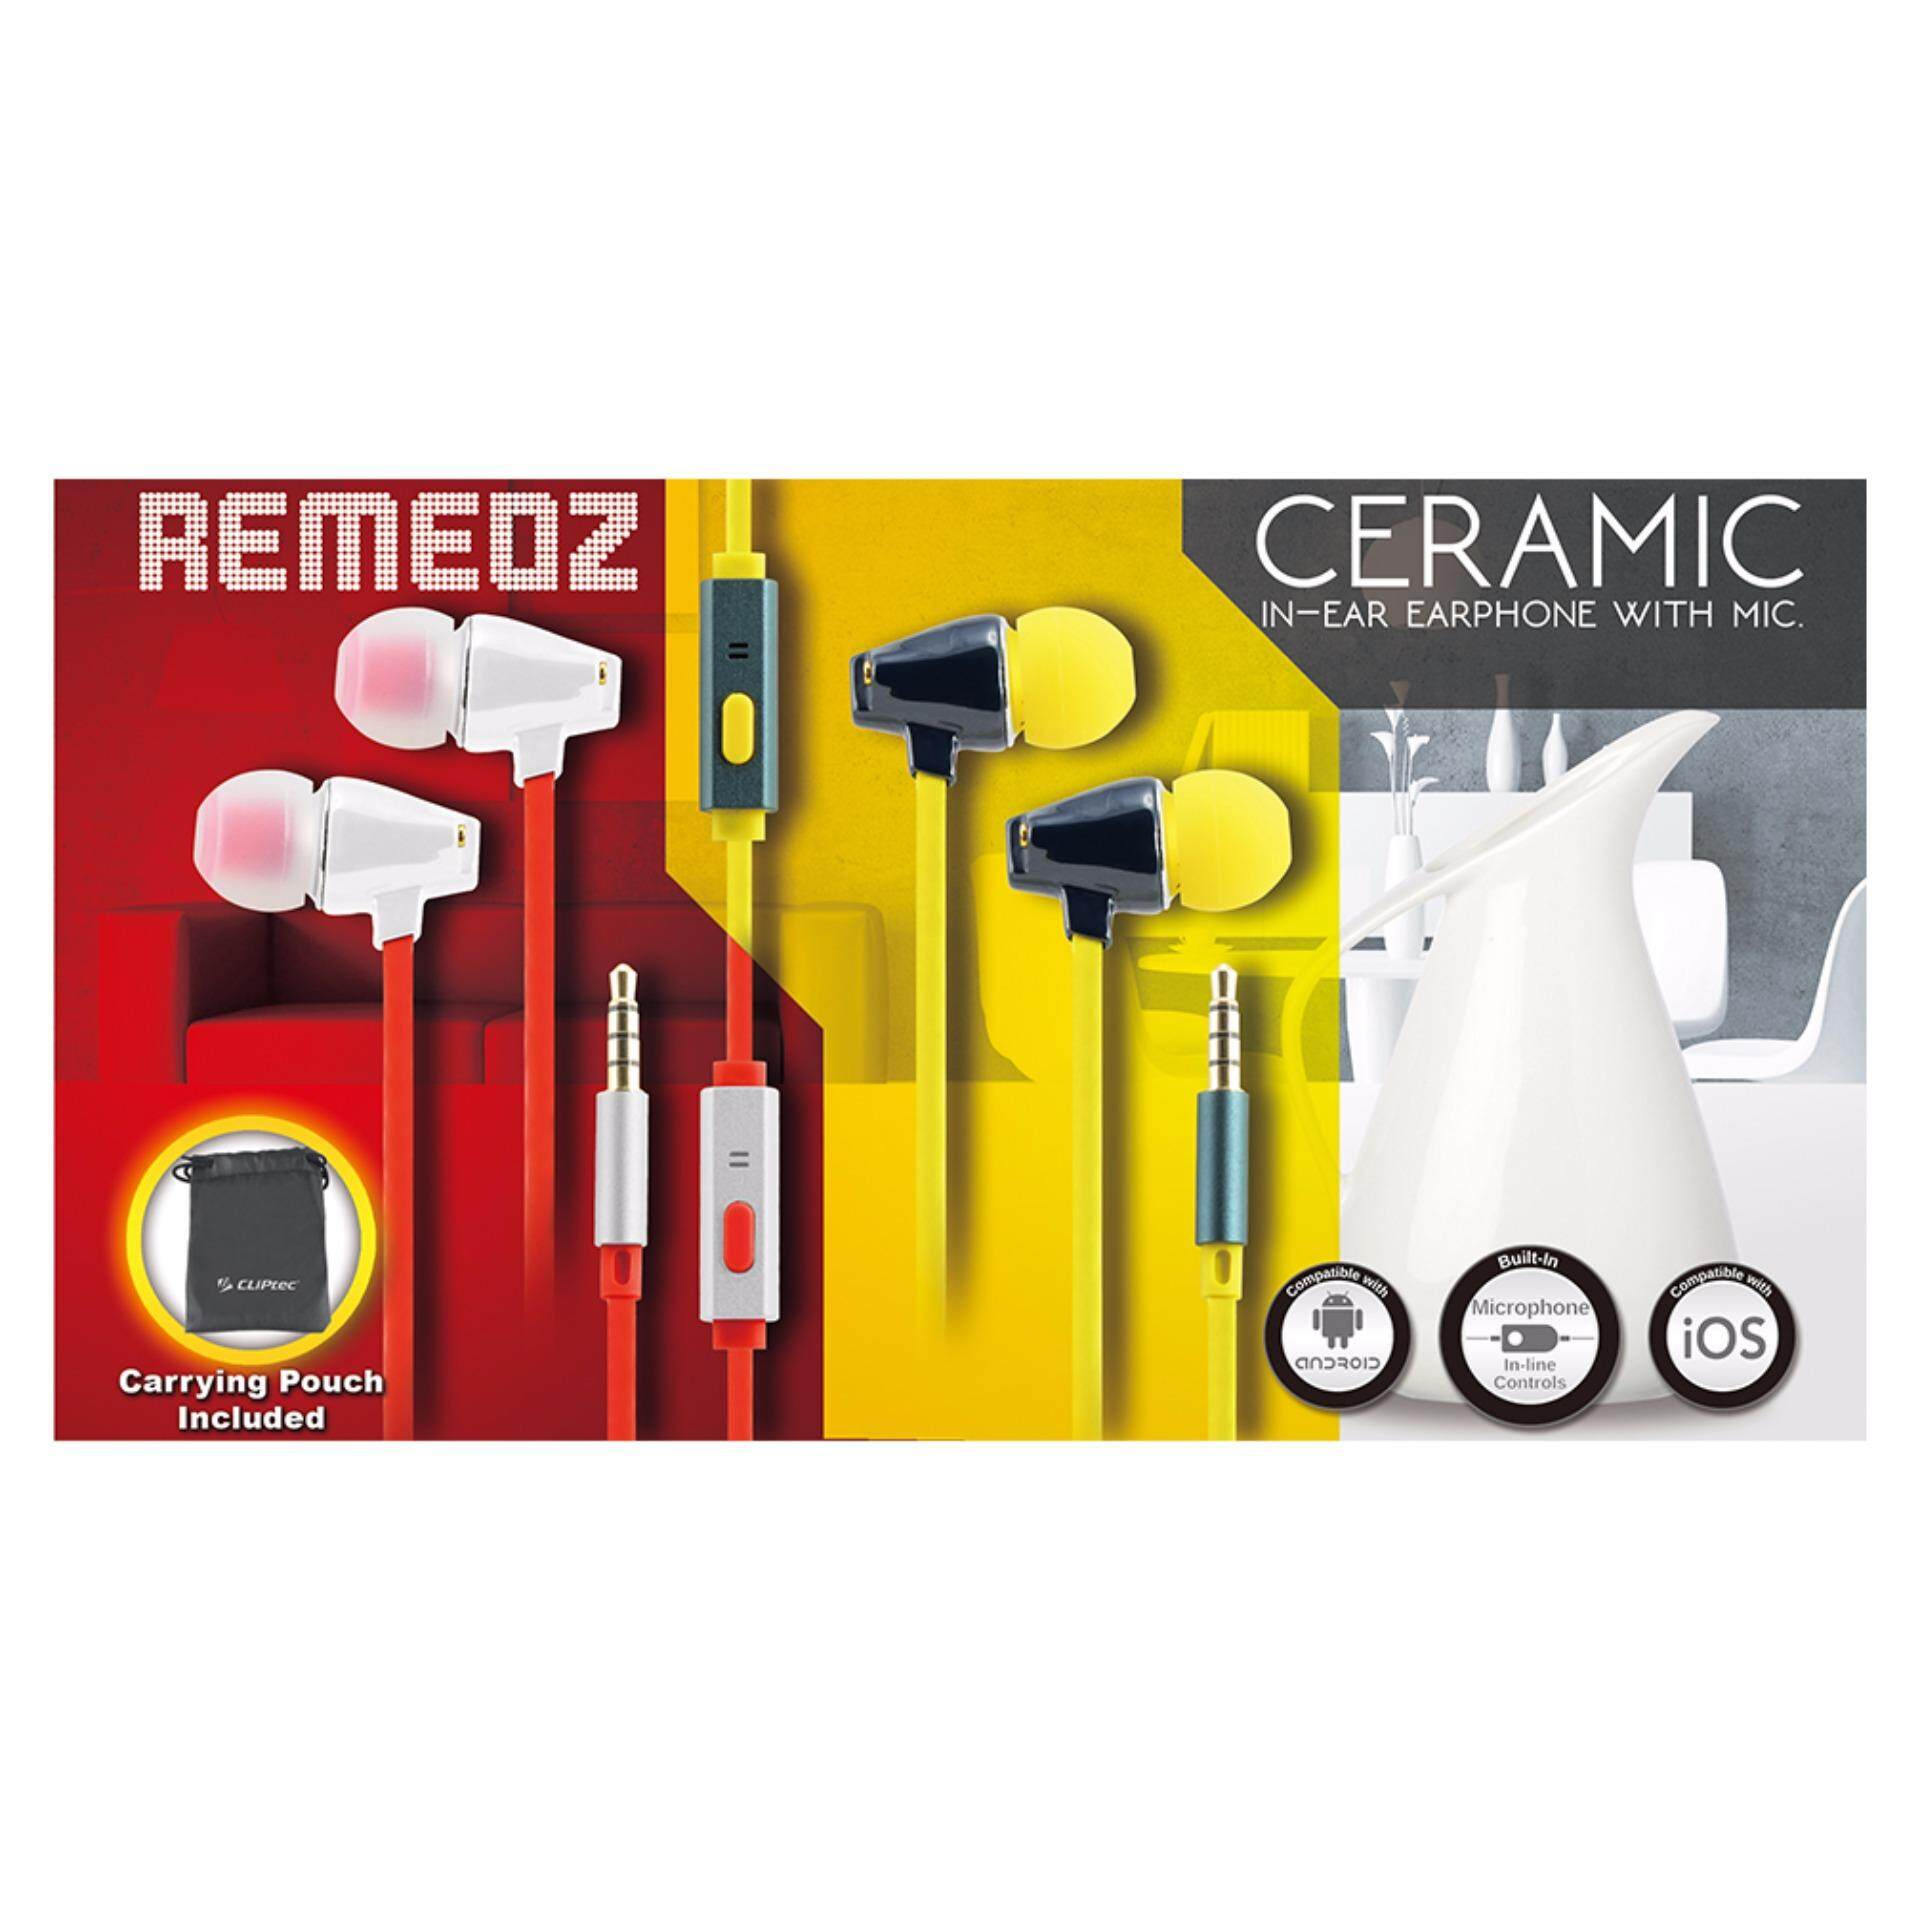 CLiPtec BME701 Ceramic In-Ear Earphone With Microphone 'Remeoz'